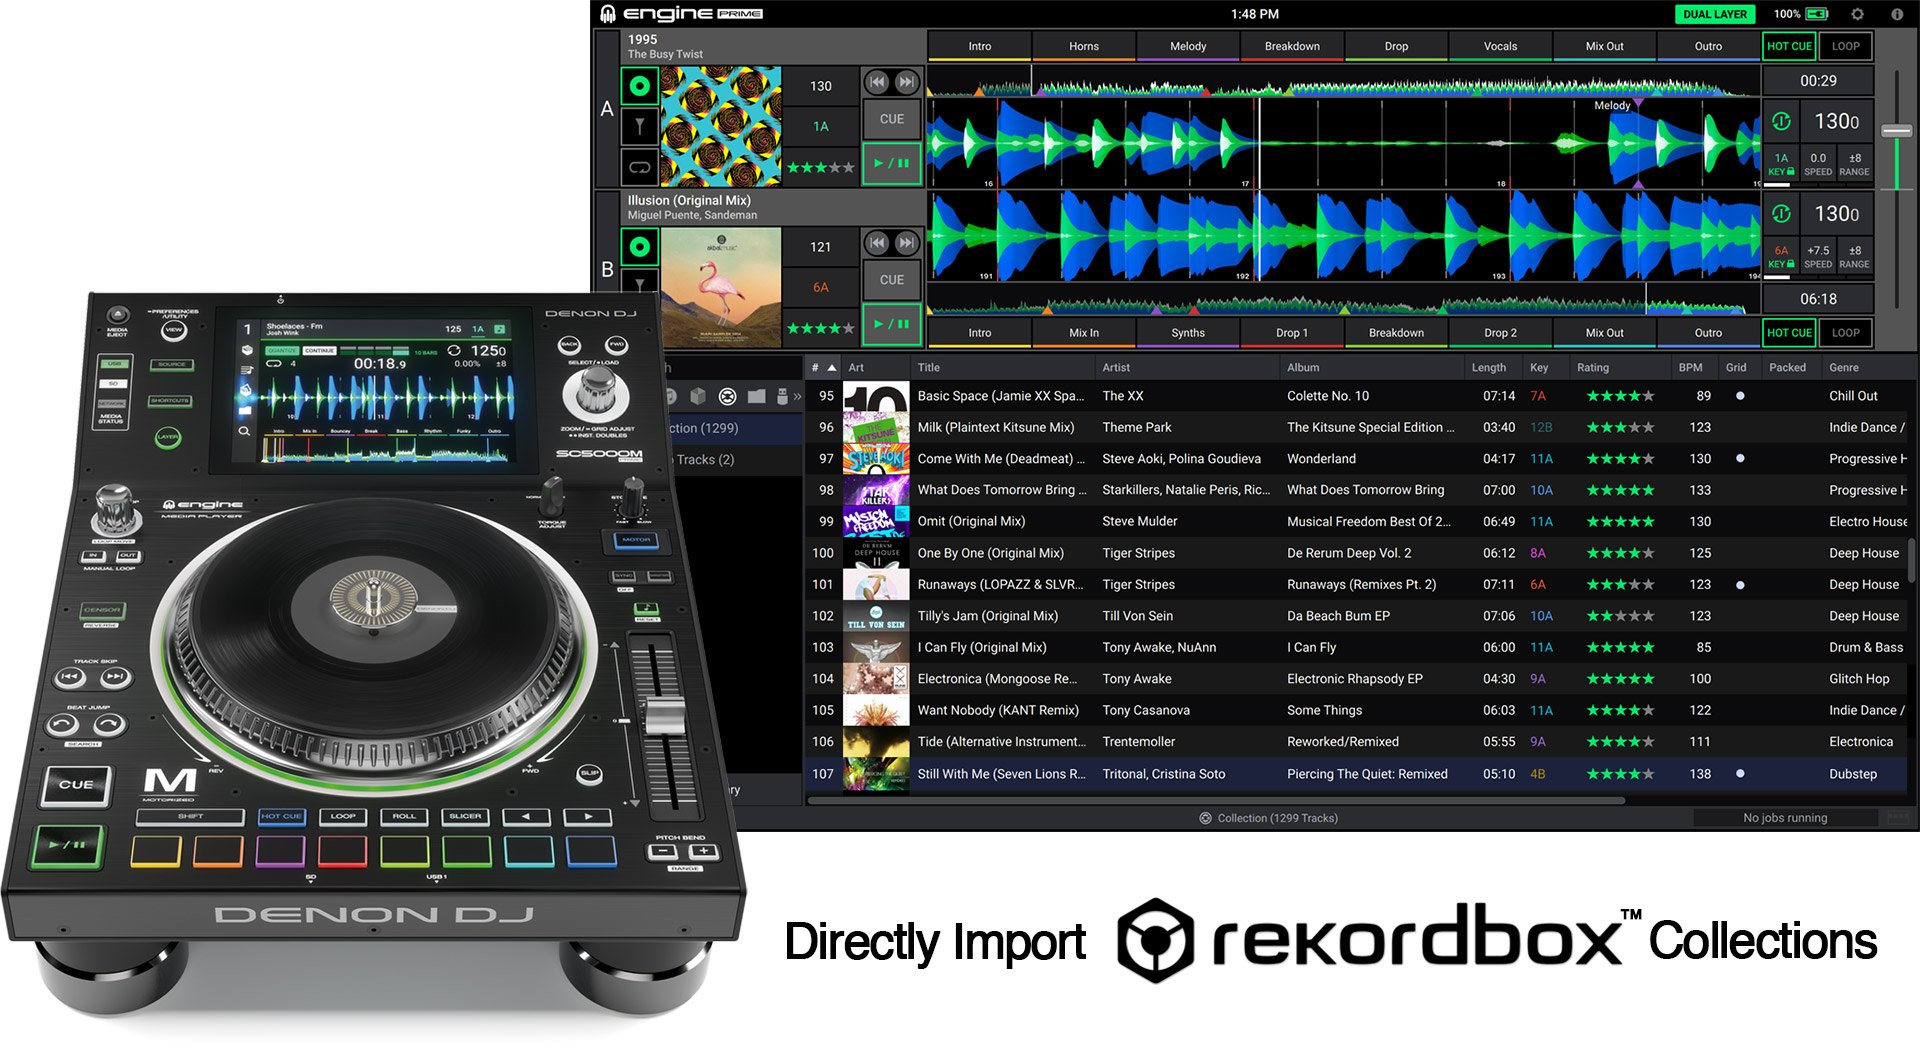 dj mixer software free download full version for pc windows 8.1